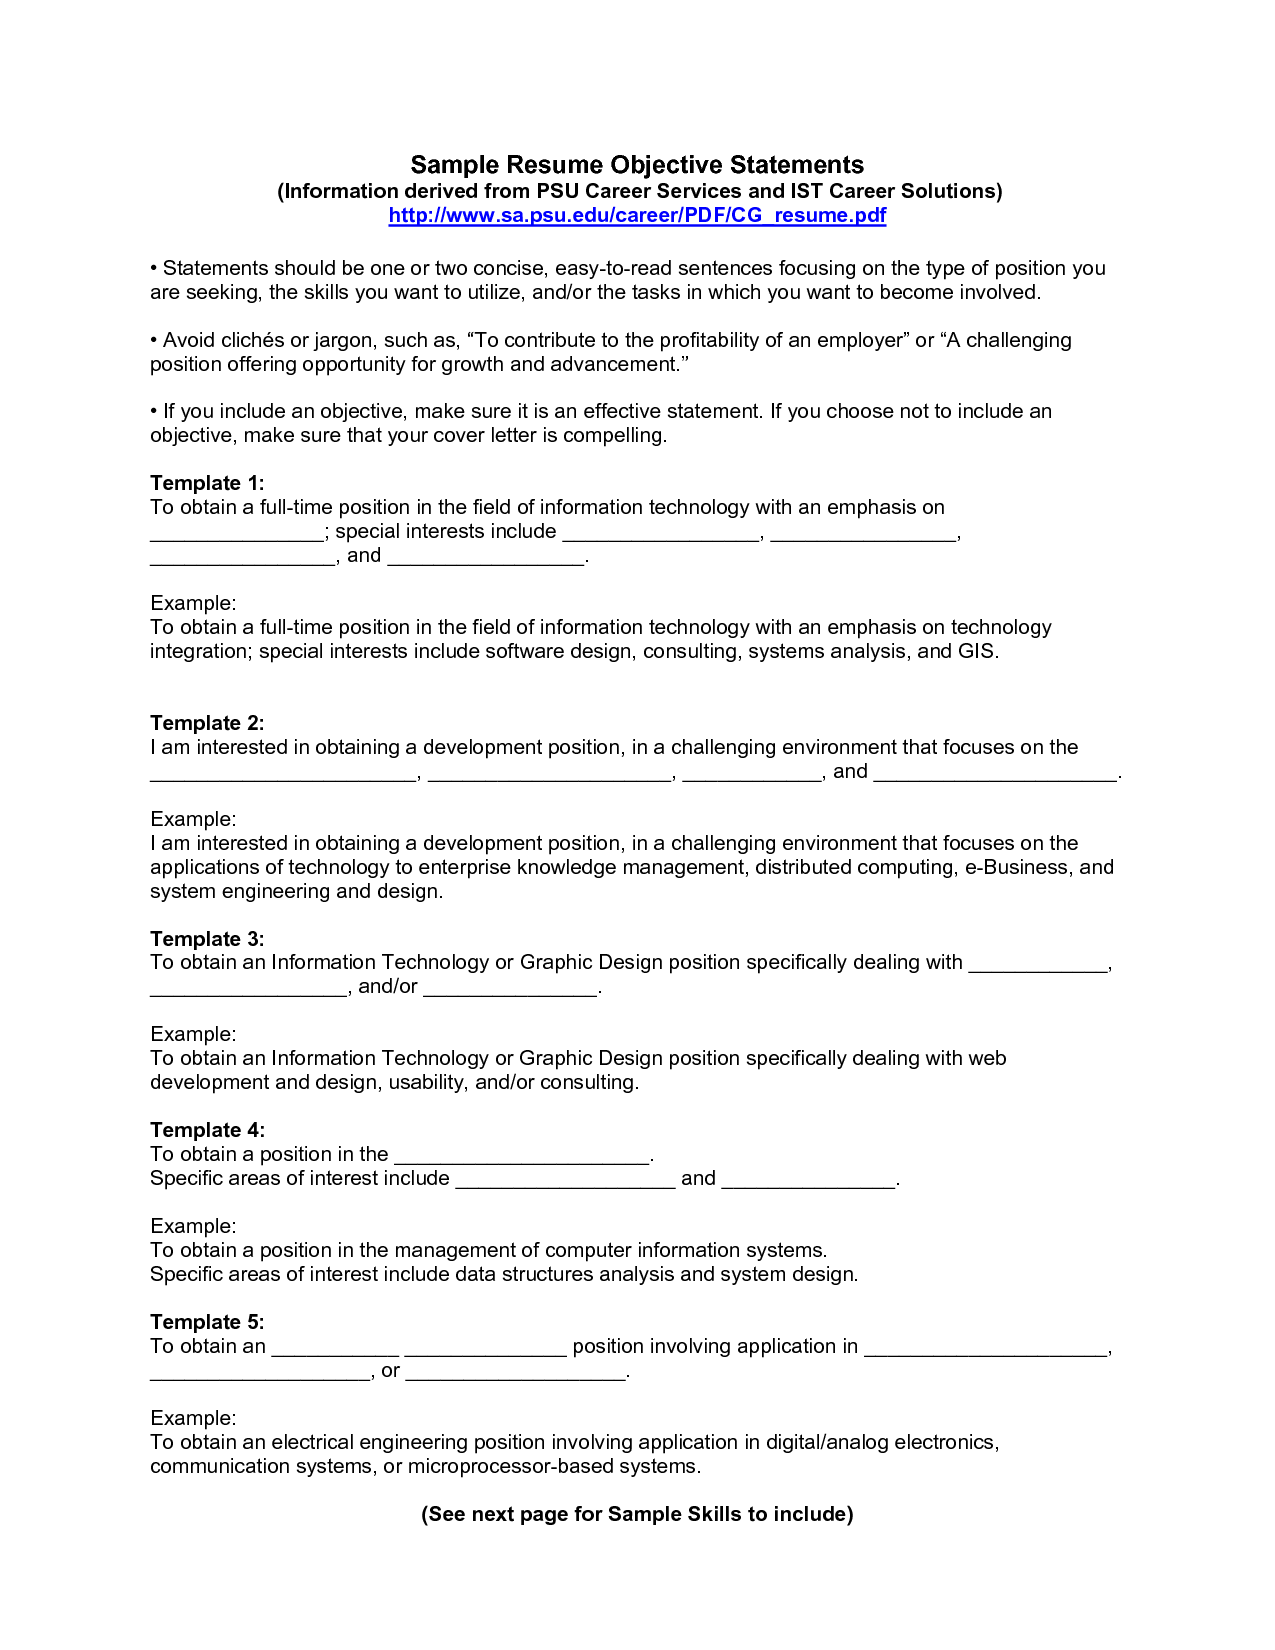 Best Objective Statement For Resume Resume Objective Statement For Teacher  Httpwww.resumecareer .